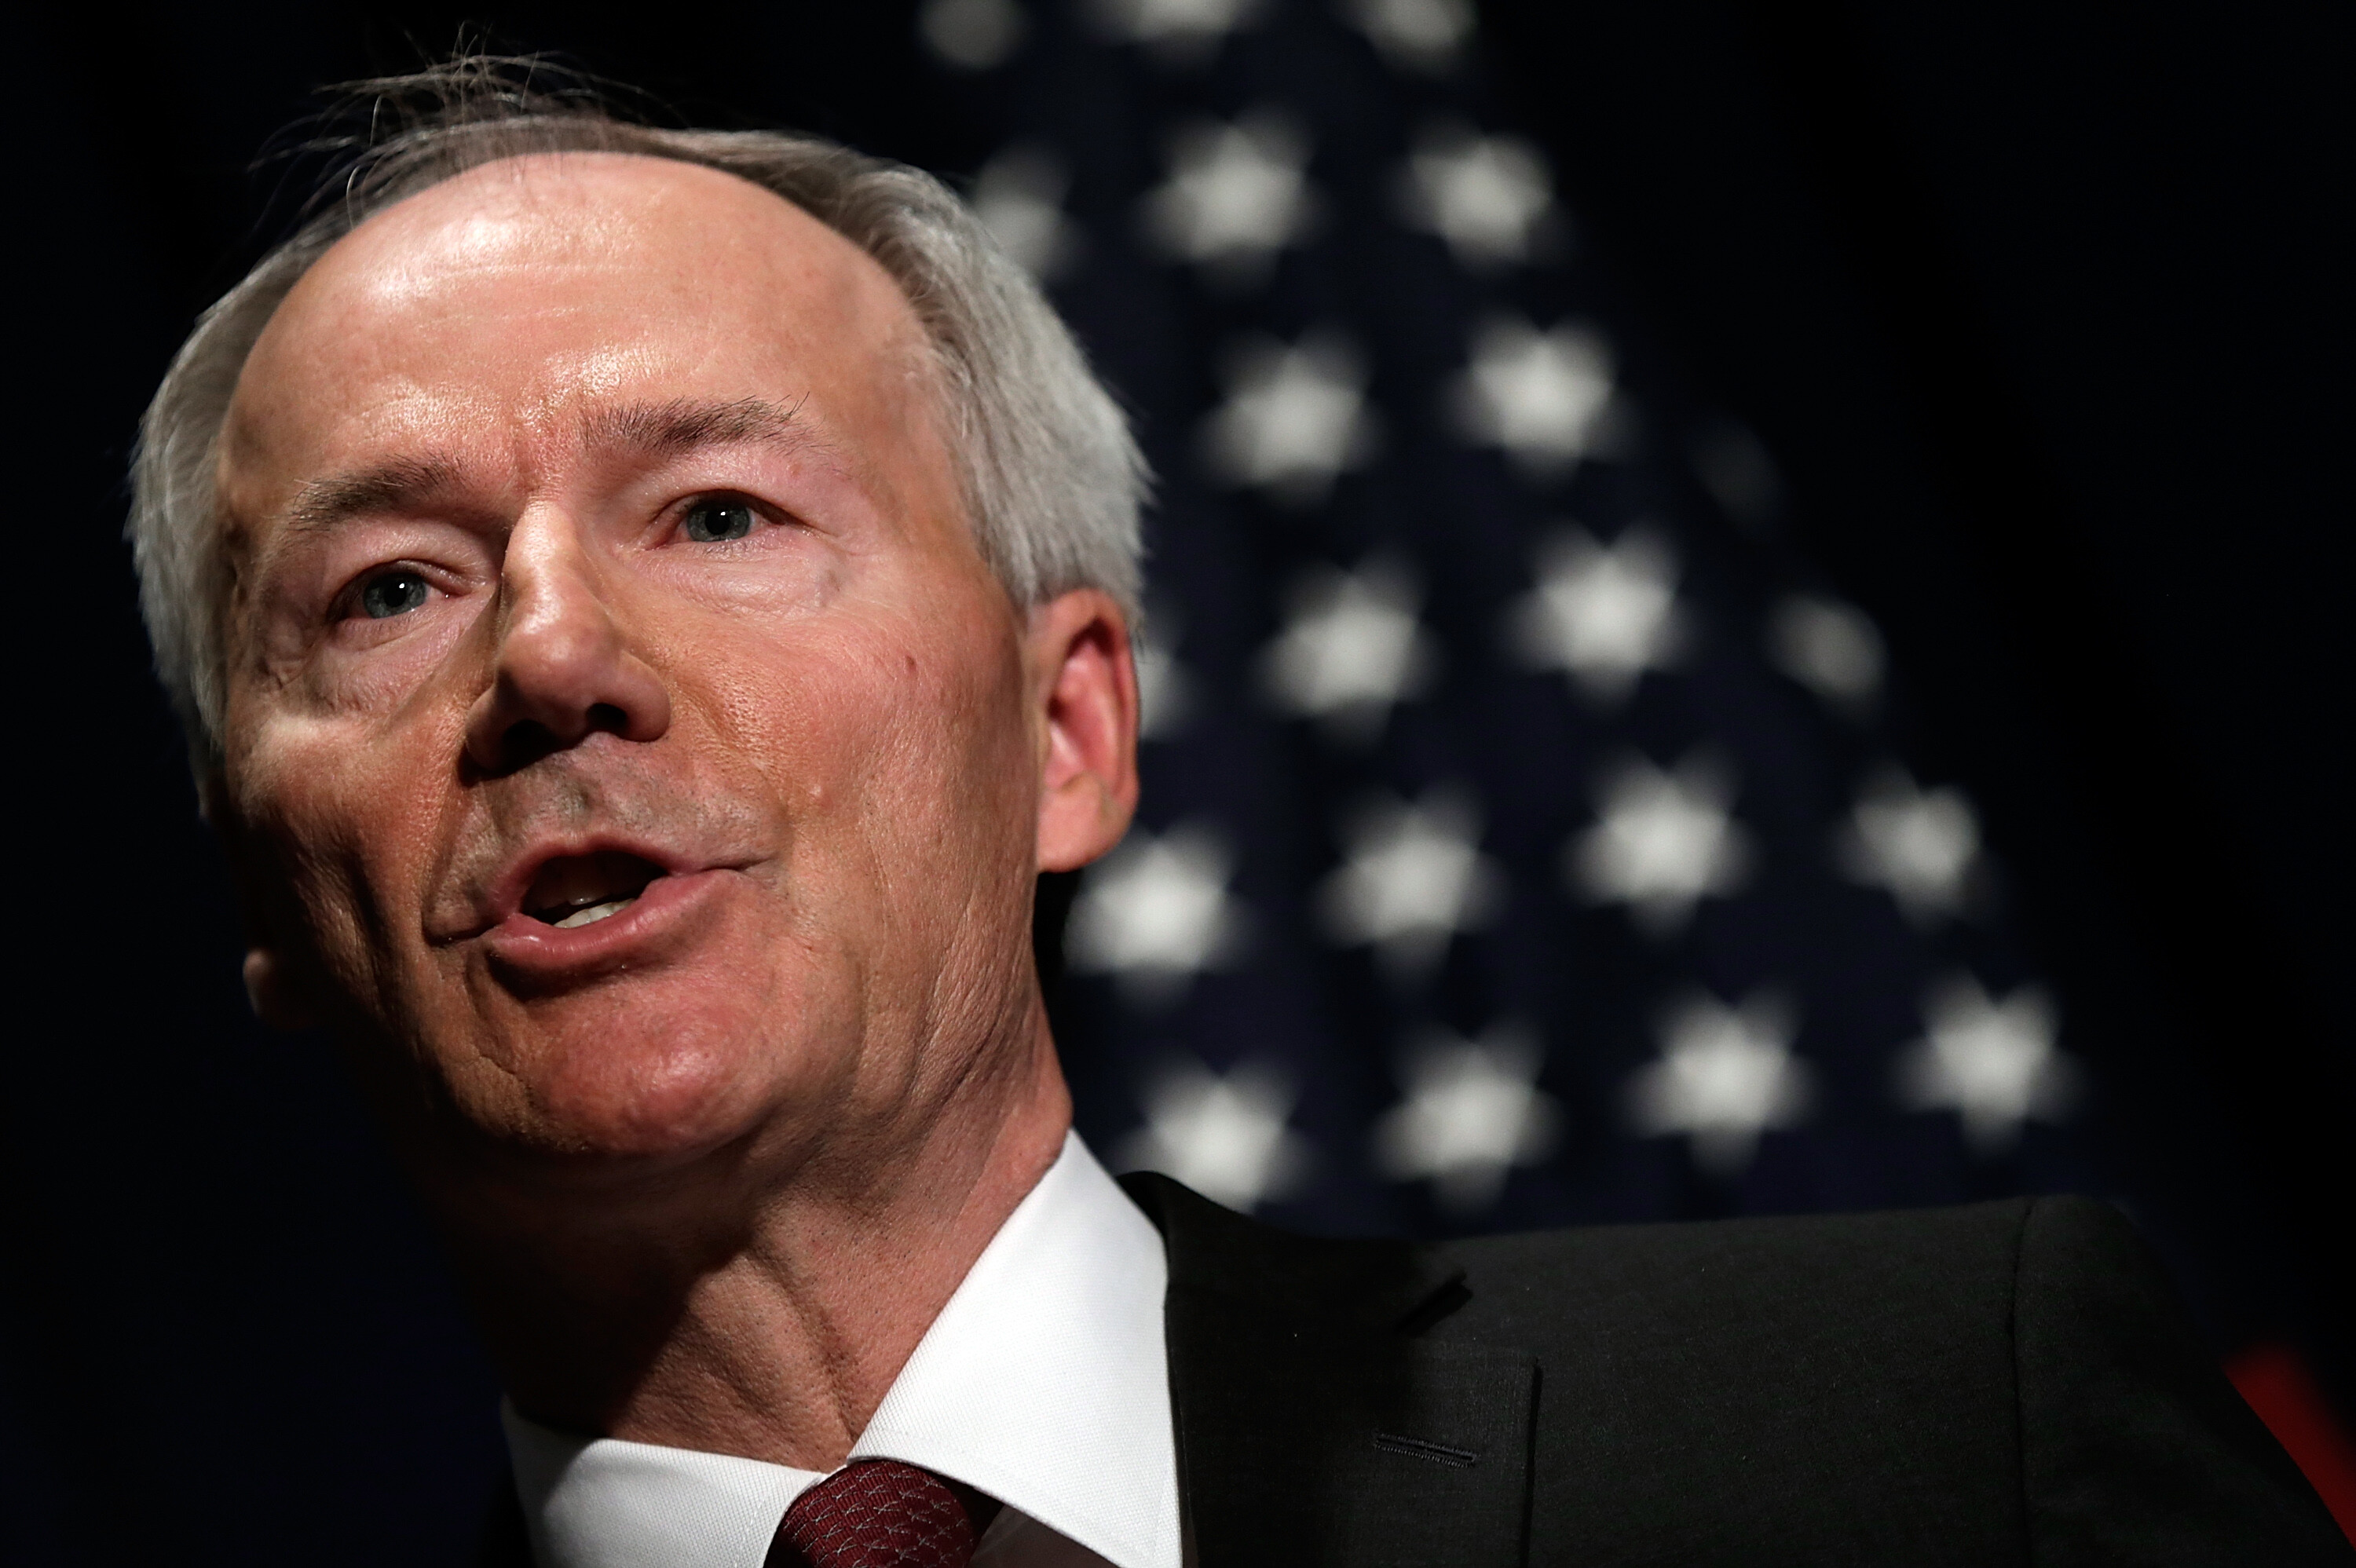 Arkansas GOP governor says he regrets ban on mask mandates as Covid-19 cases surge